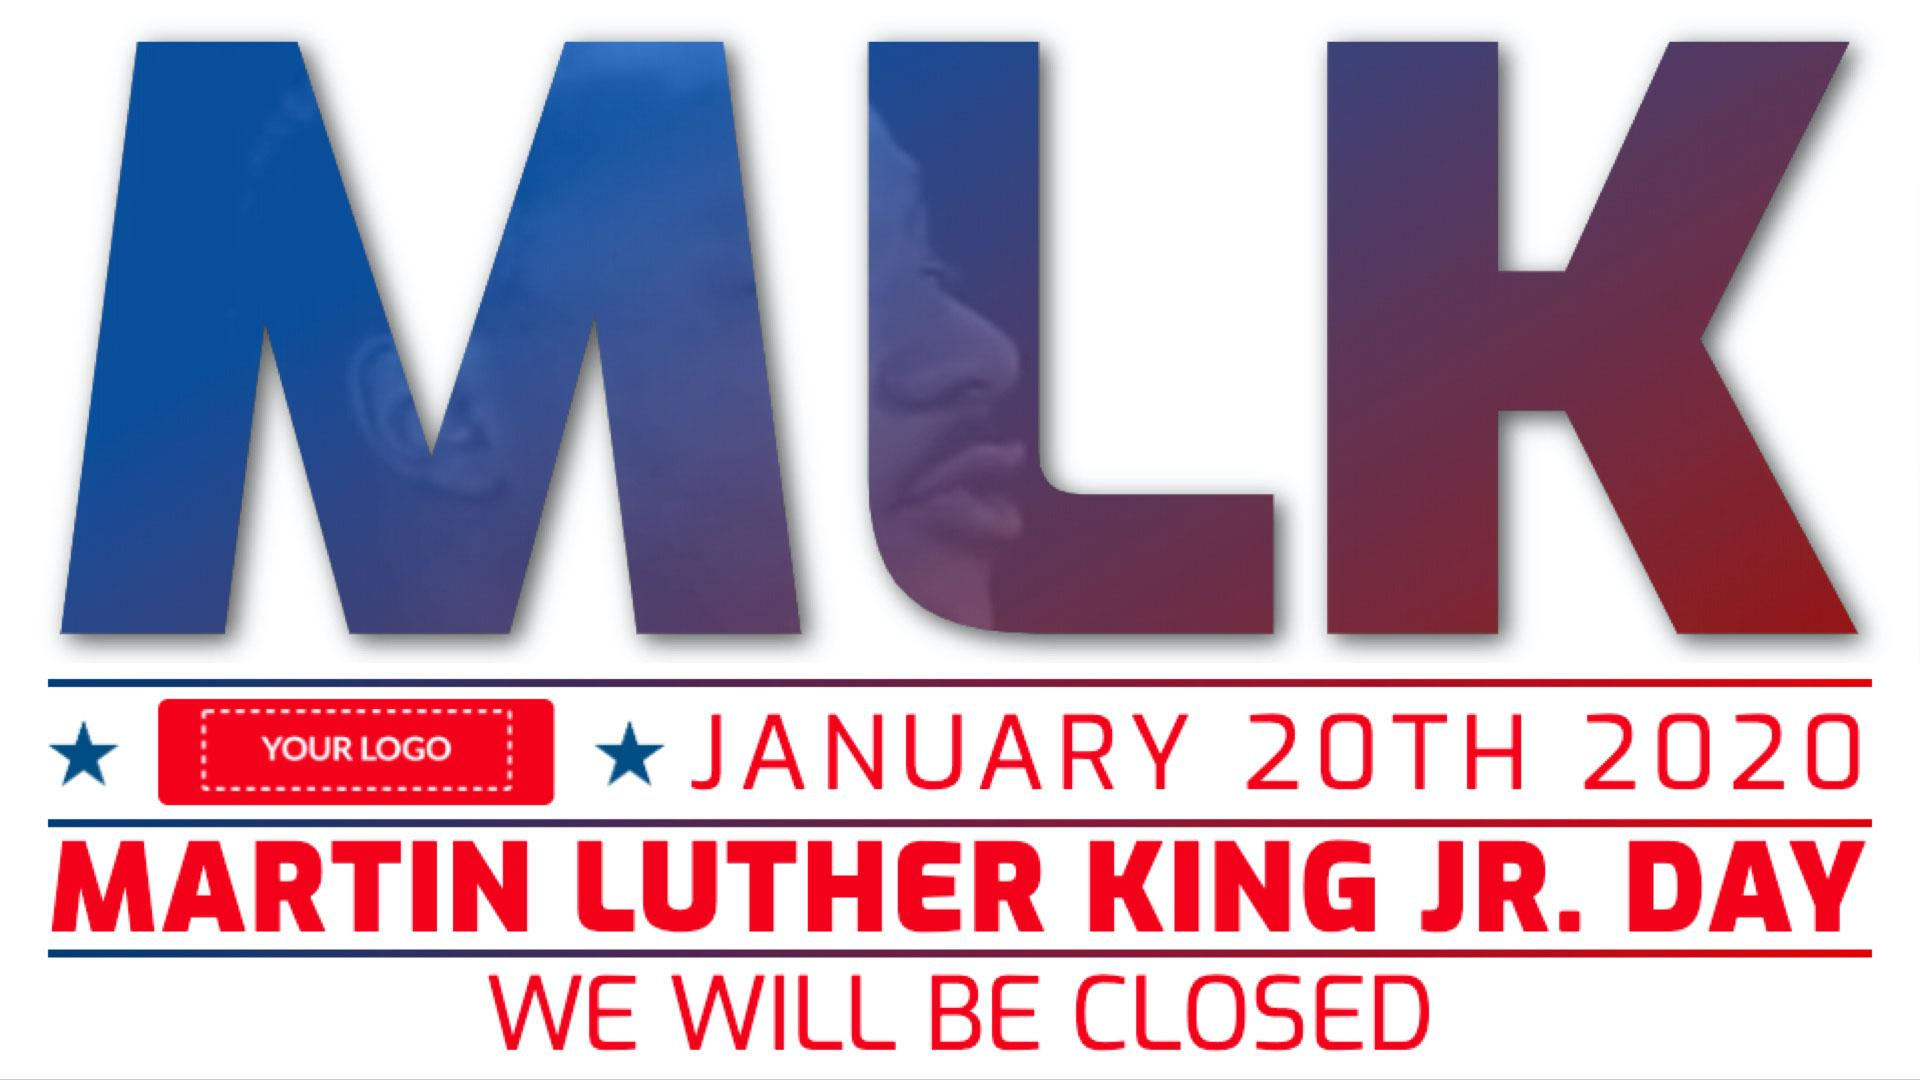 Martin Luther King Jr. Day Digital Signage Template